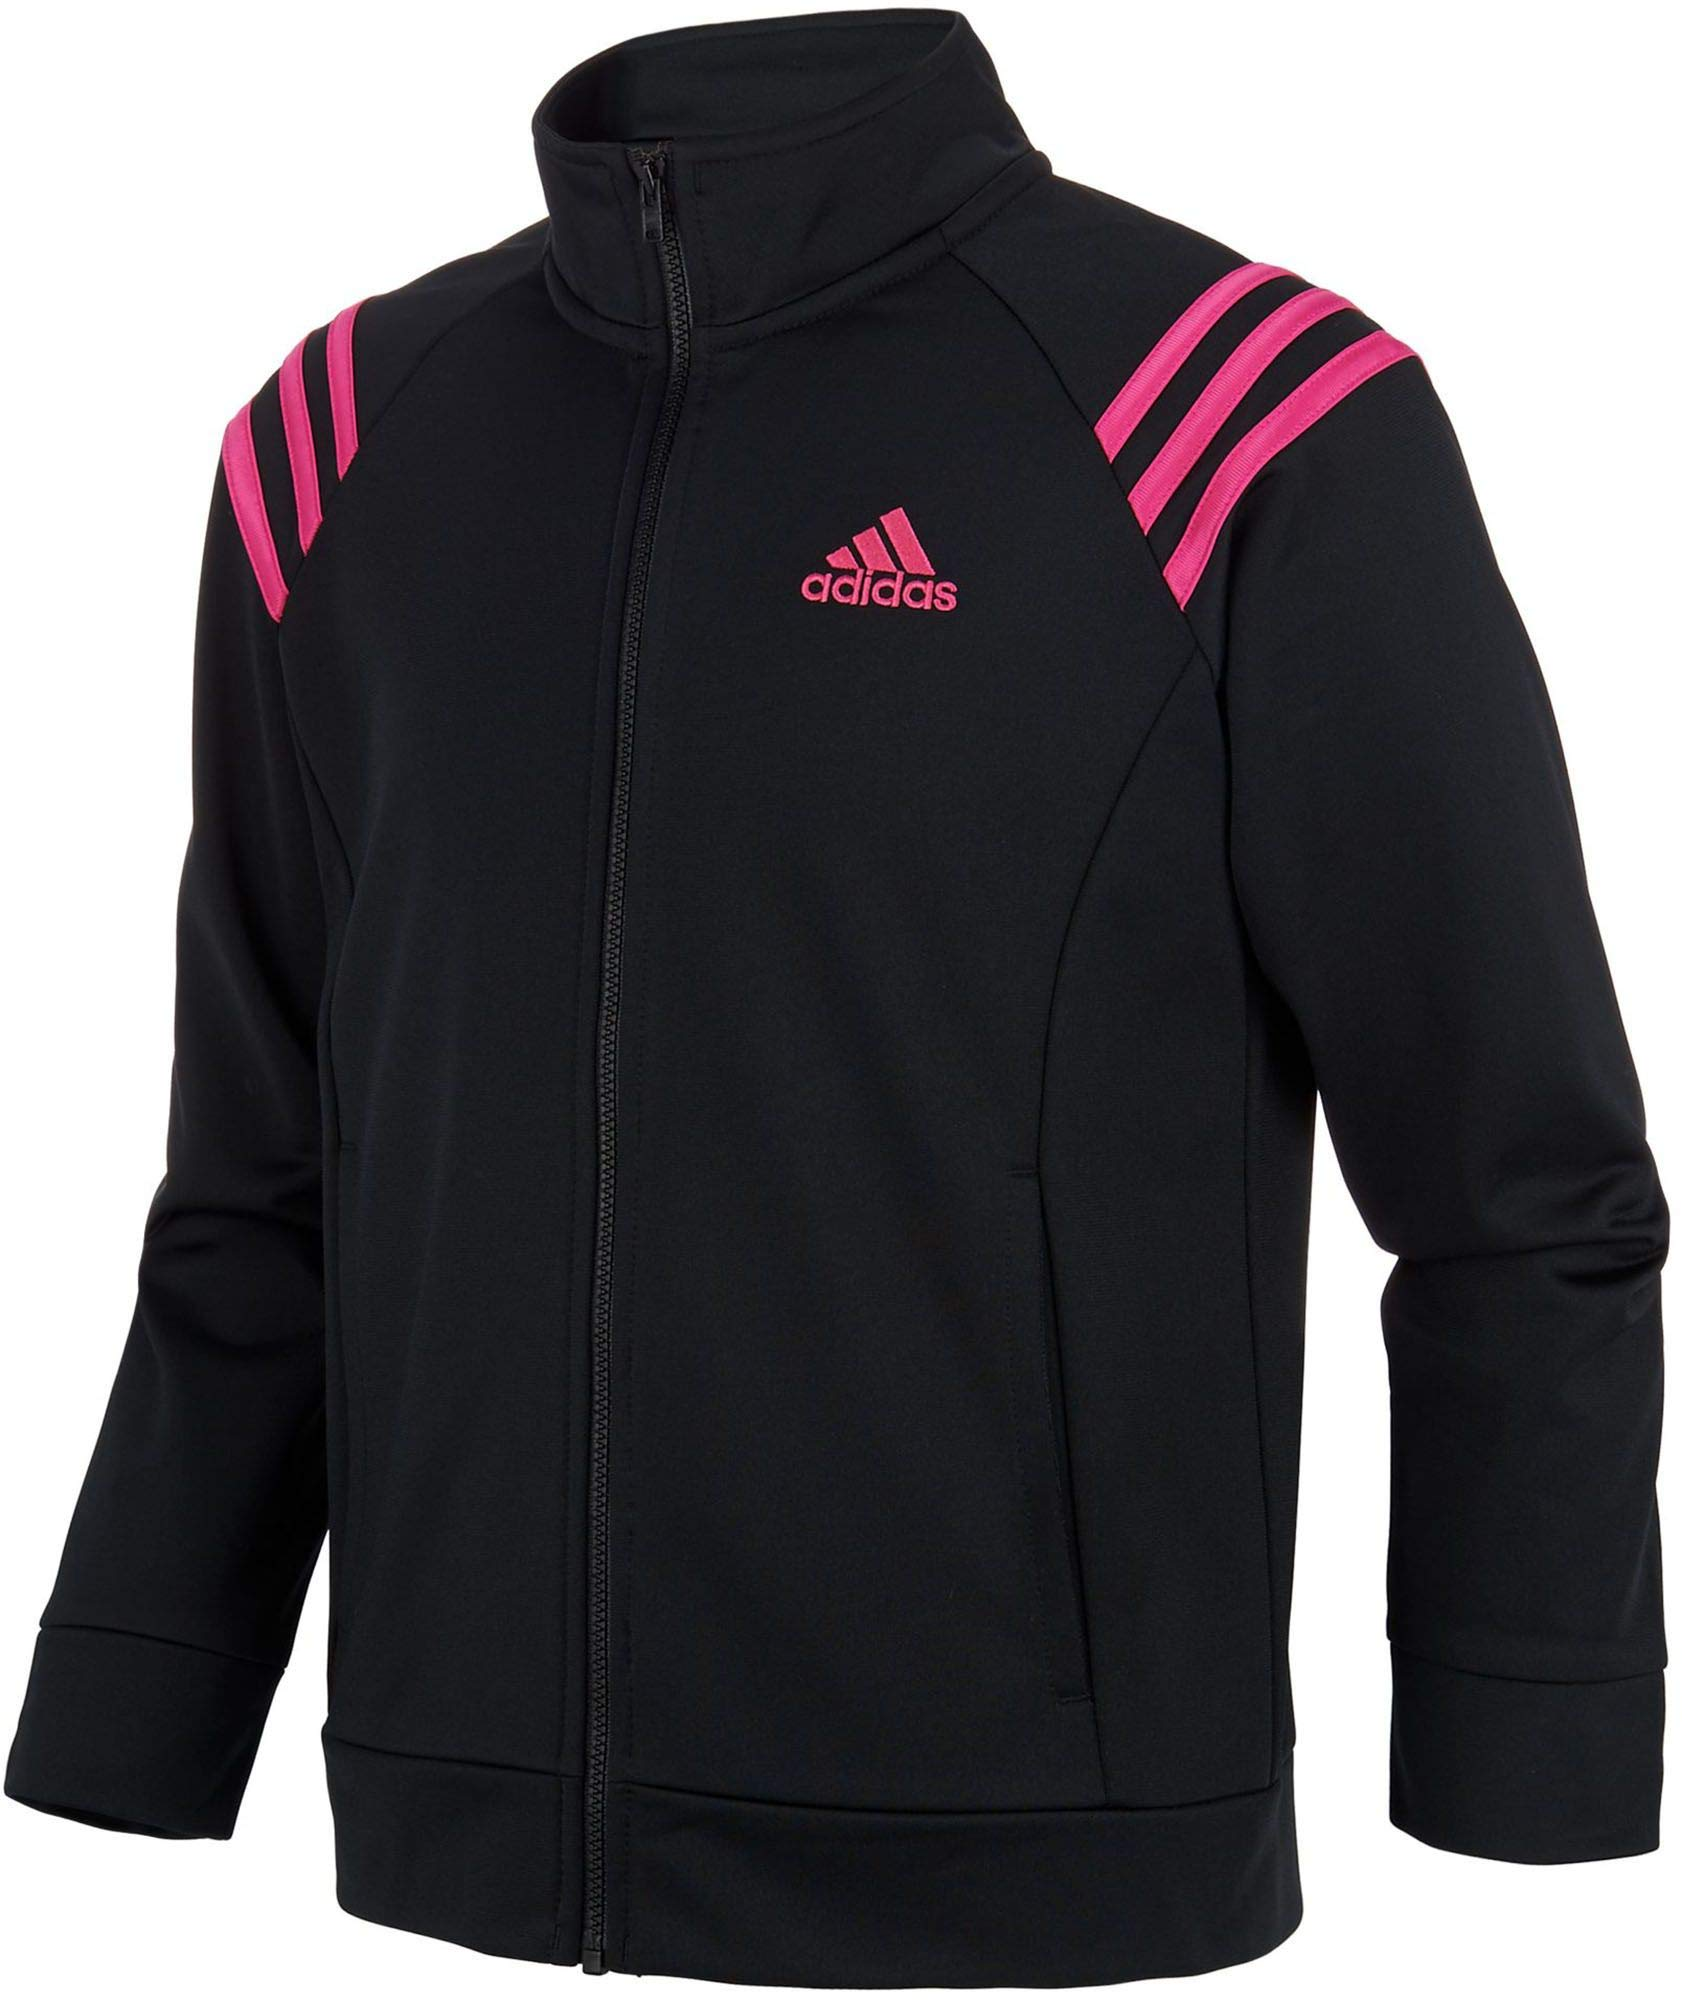 adidas Girls Athletic Event Jacket Full Zip Comfortable Fit Tricot Sports Jackets with Side Pockets (Black/X-Small) by adidas